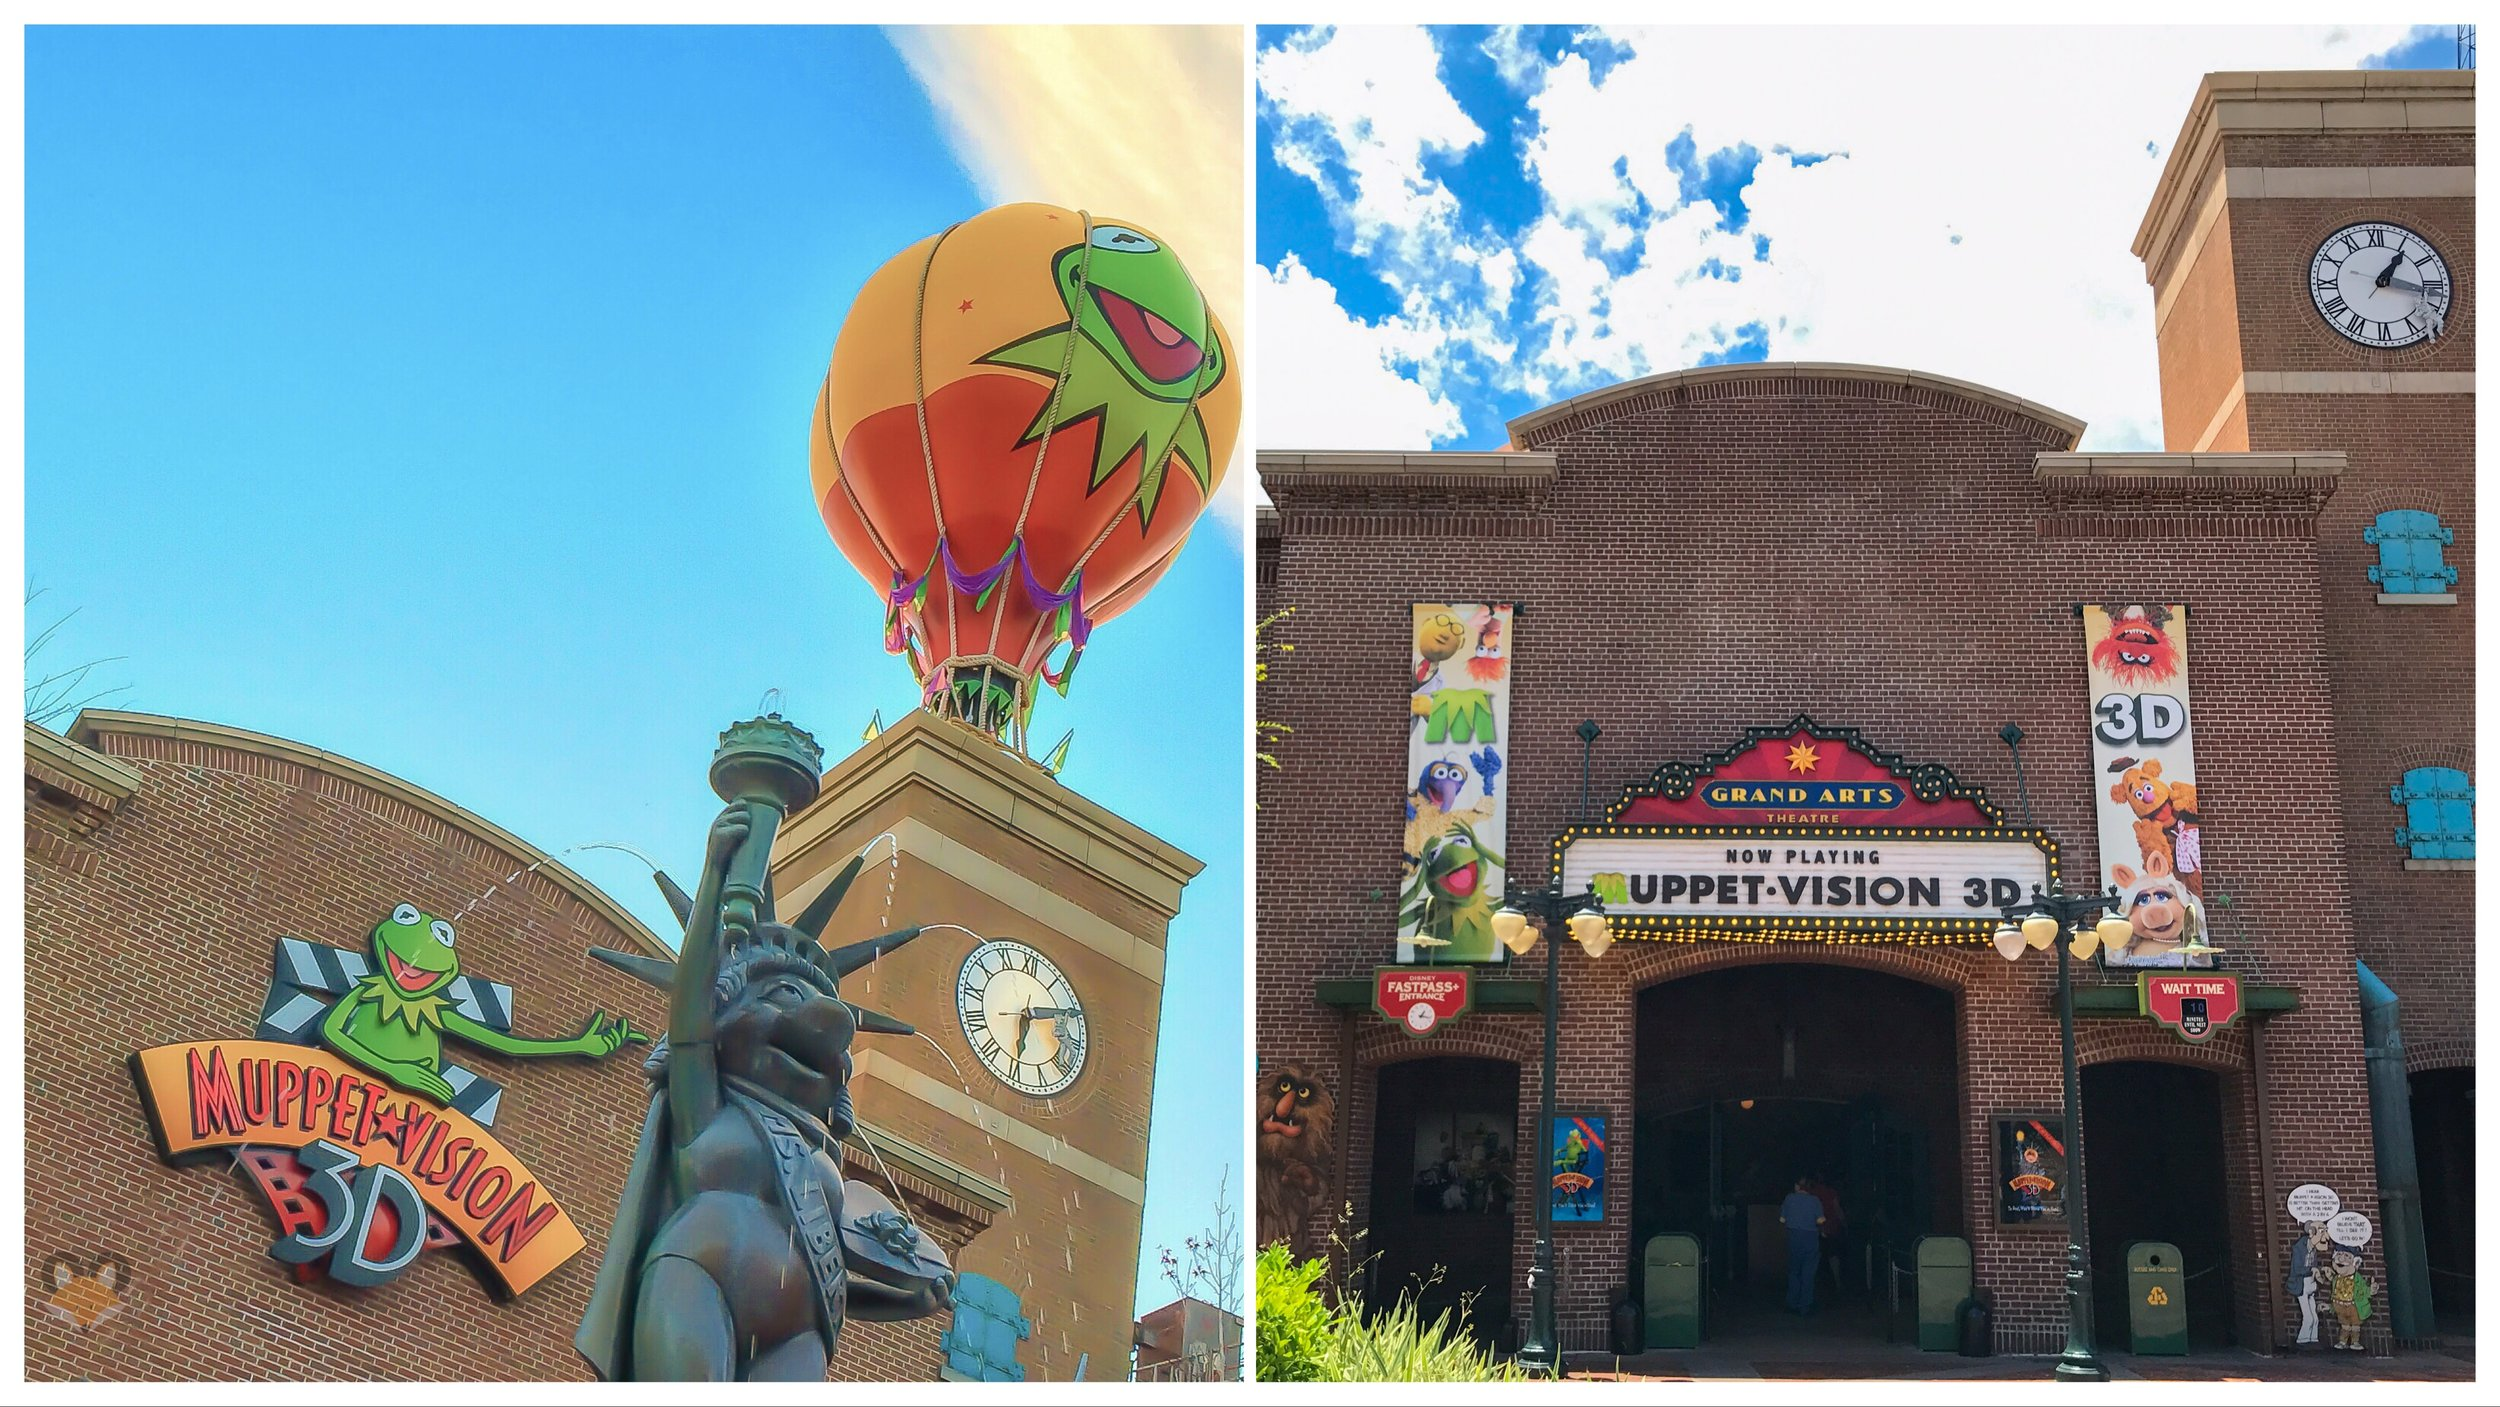 On the left you have the old Muppet Vision 3D marquee with that iconic Kermit hot air balloon perched high above the building. On the right you'll see the new Grand Arts Theater signage. The balloon never made it back into the themeing.